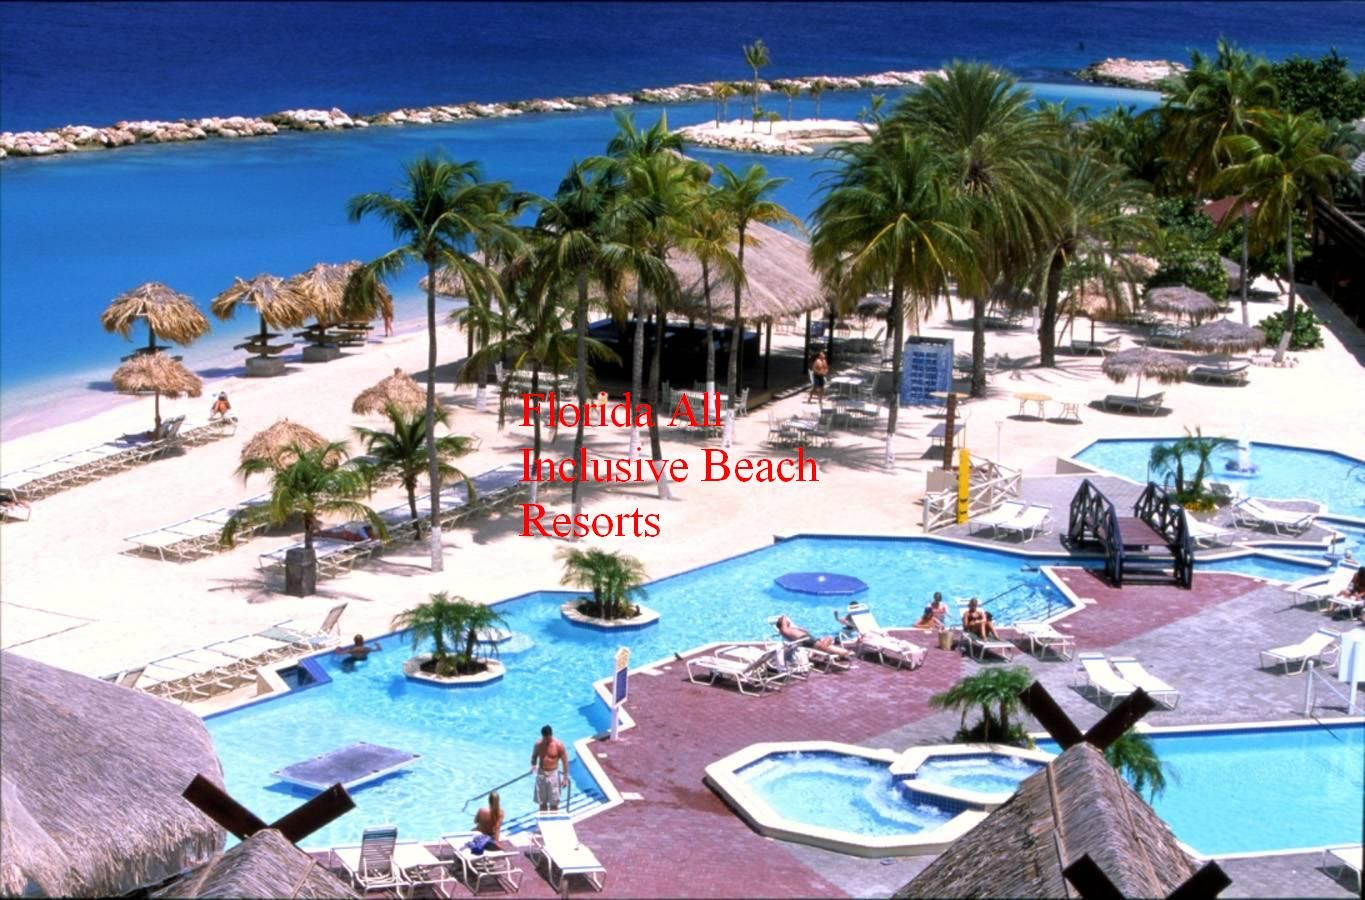 Florida all inclusive beach resorts for family luxurious florida resorts all over the world